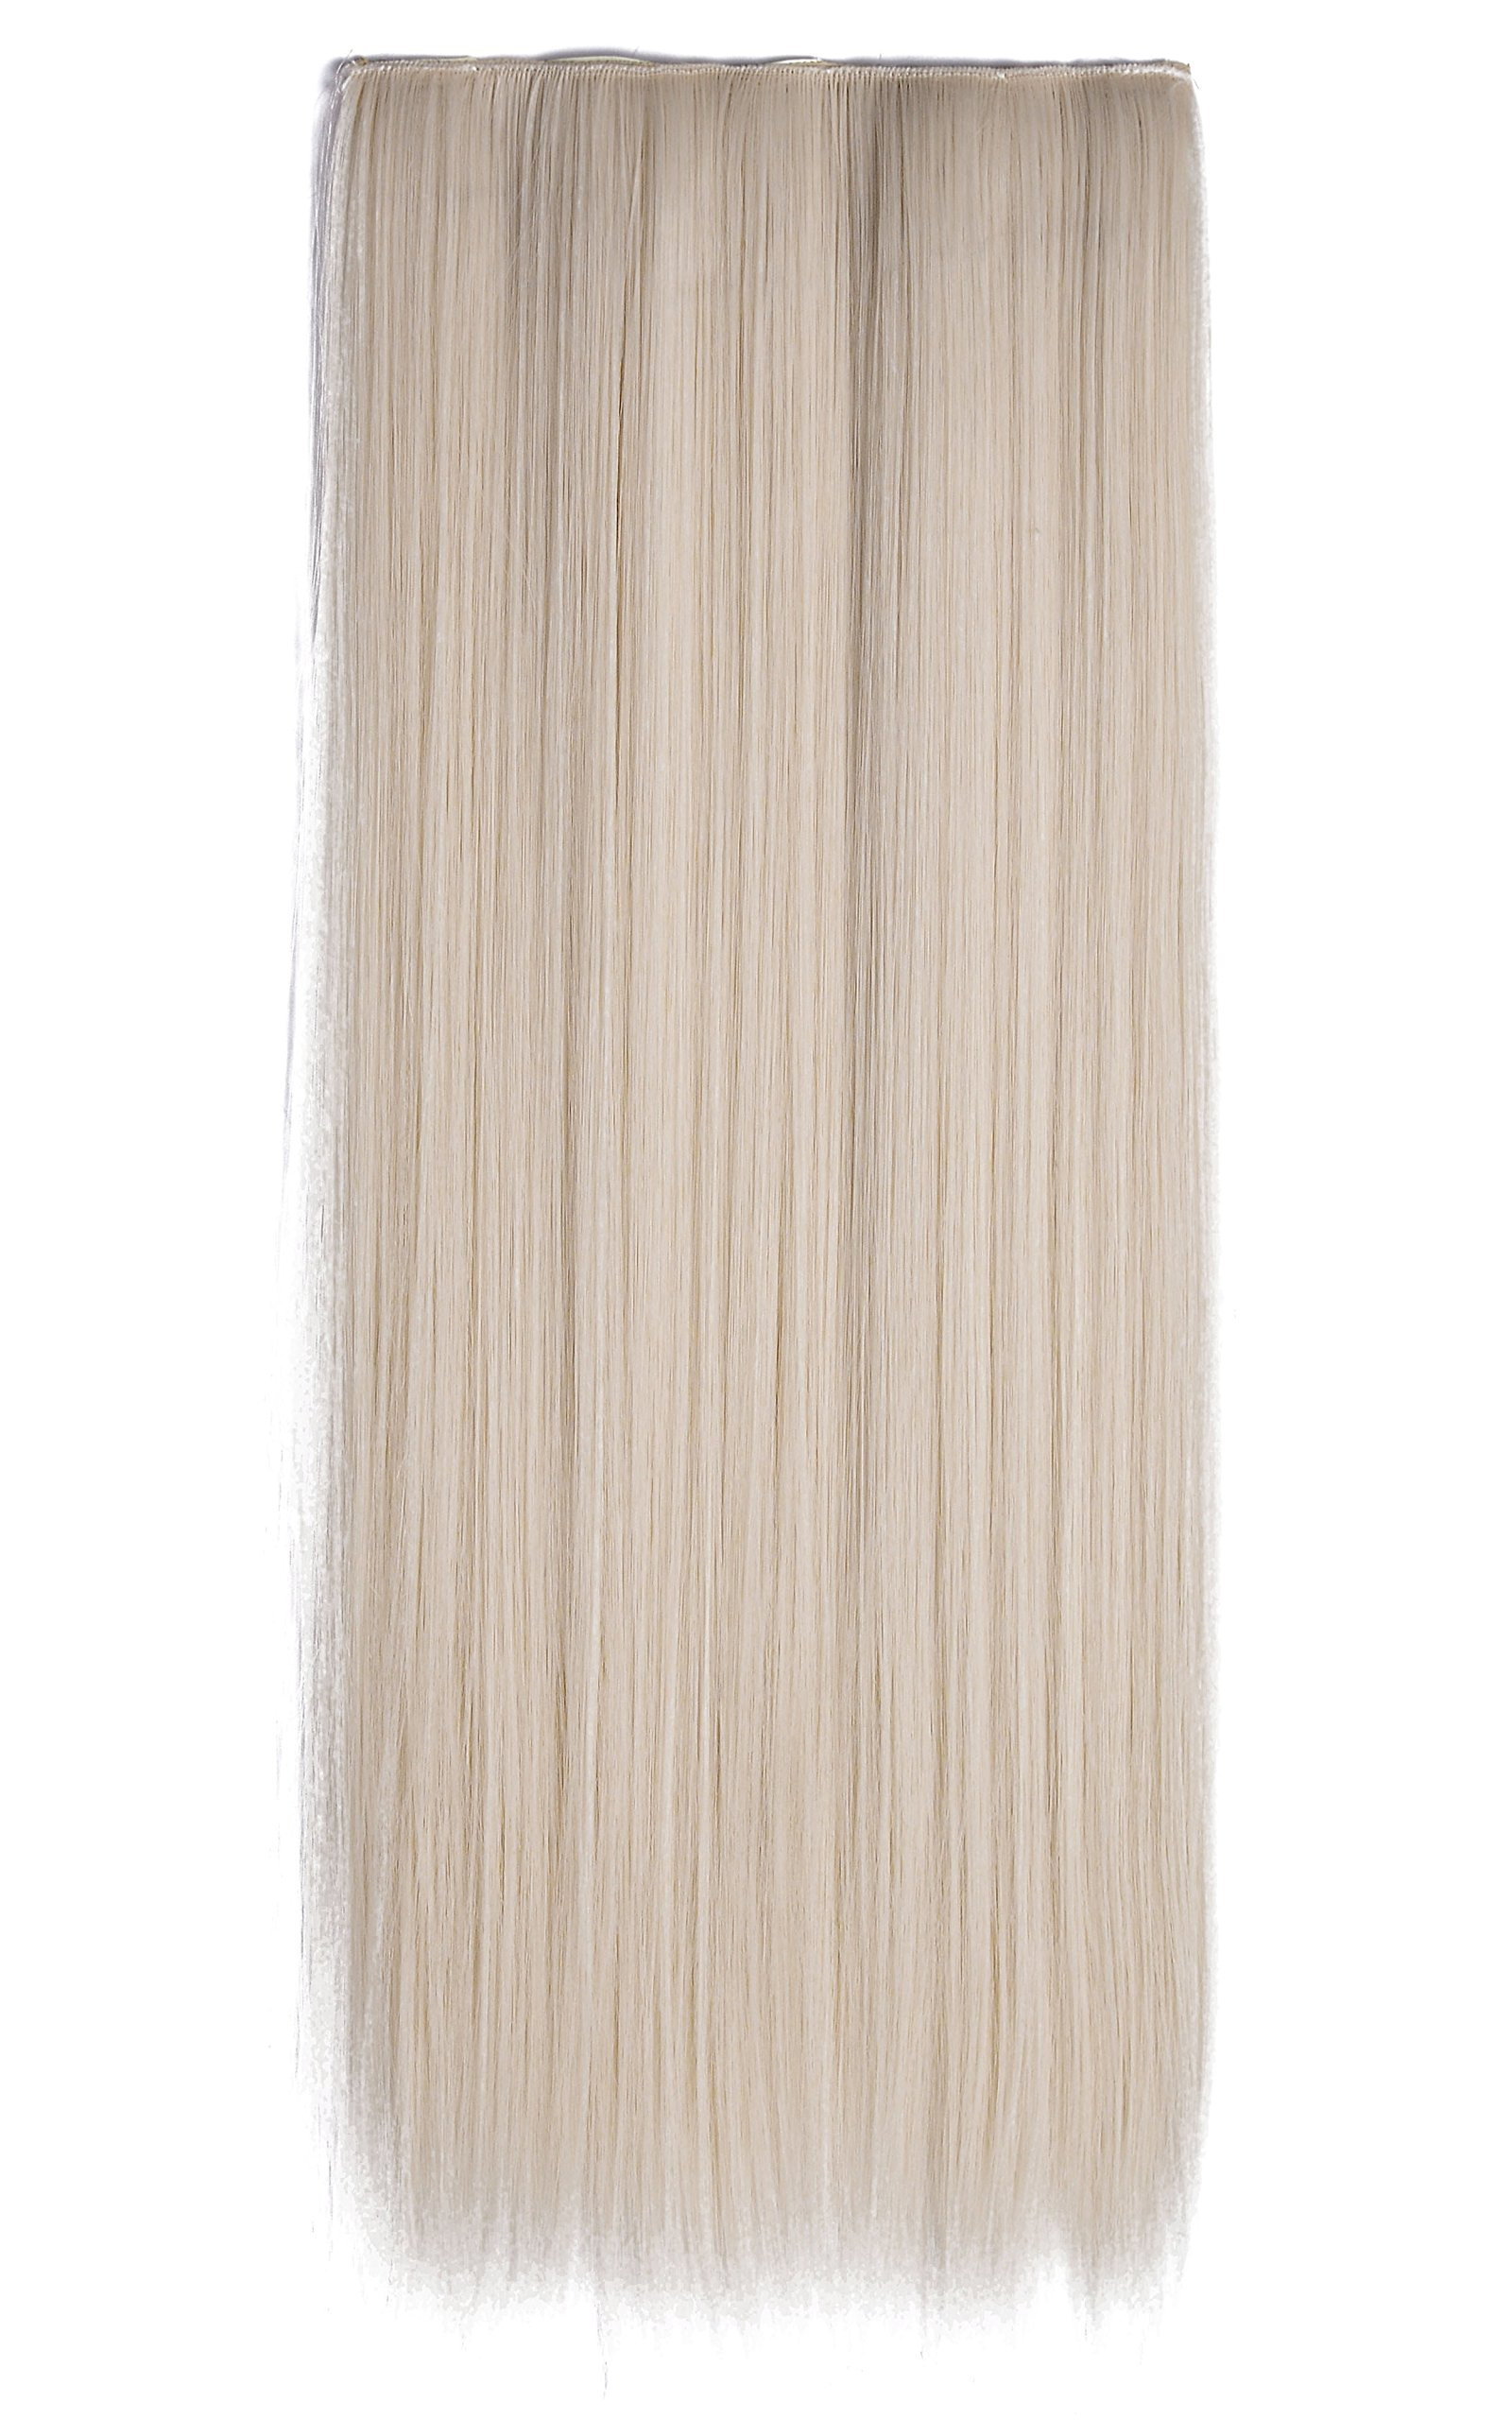 Onedor 24'' Straight 3/4 Full Head Synthetic Hair Extensions Clip-on Clip-in Hairpieces (60#-platinum Blonde)